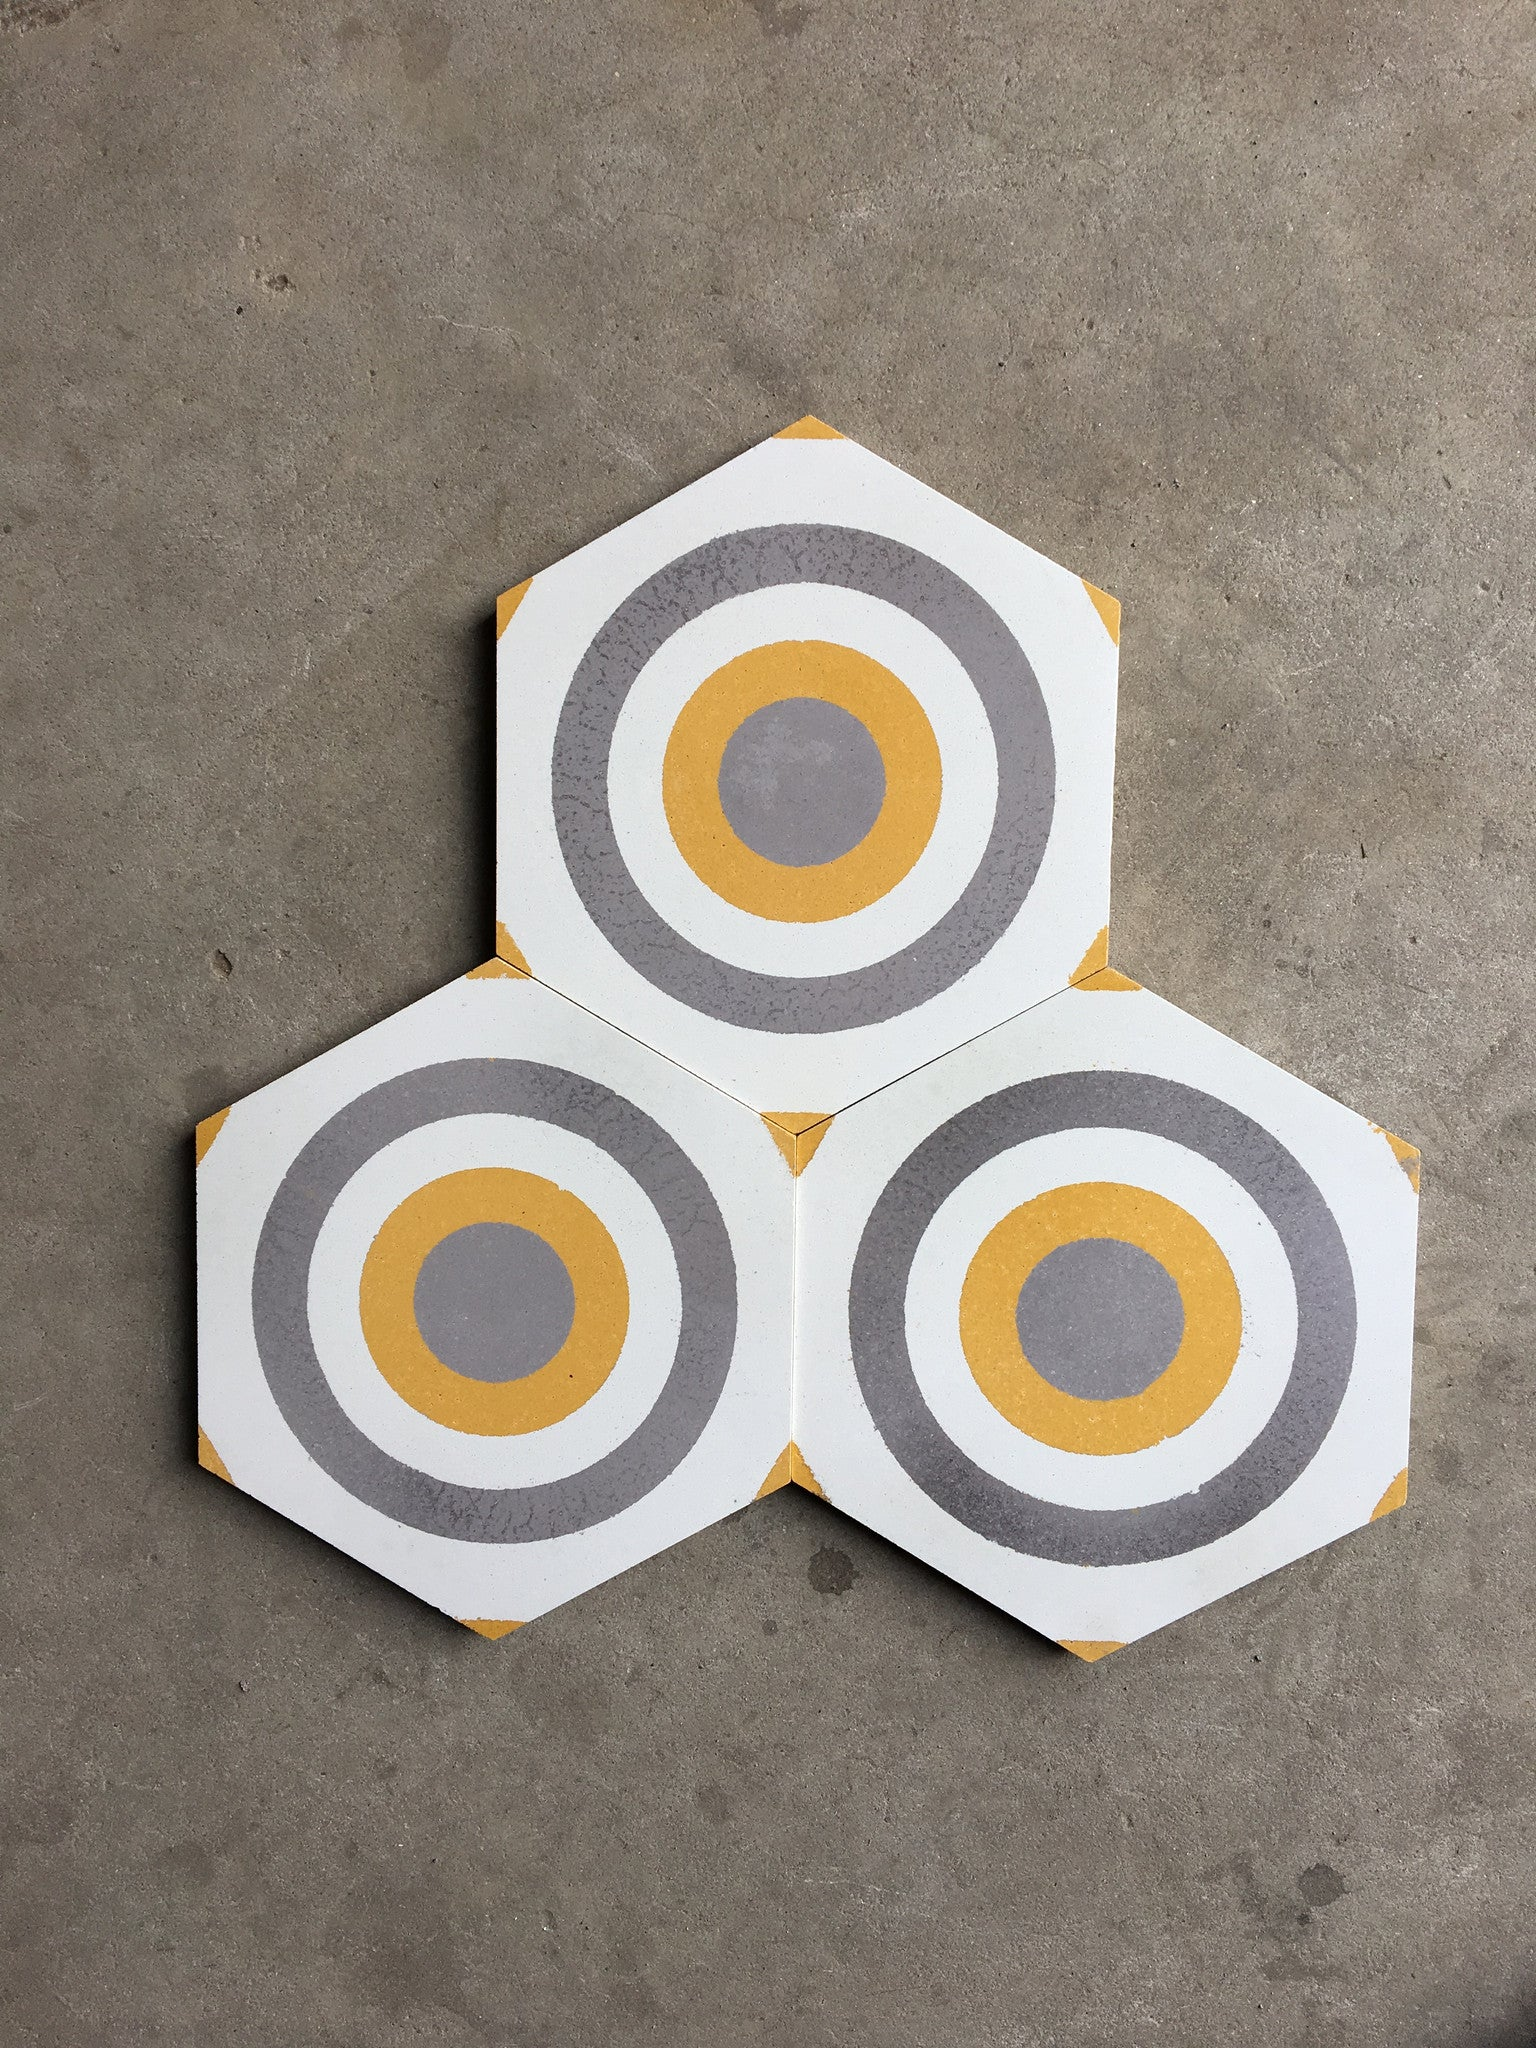 Cement Tile - Hexagon Tile Concentric Circle